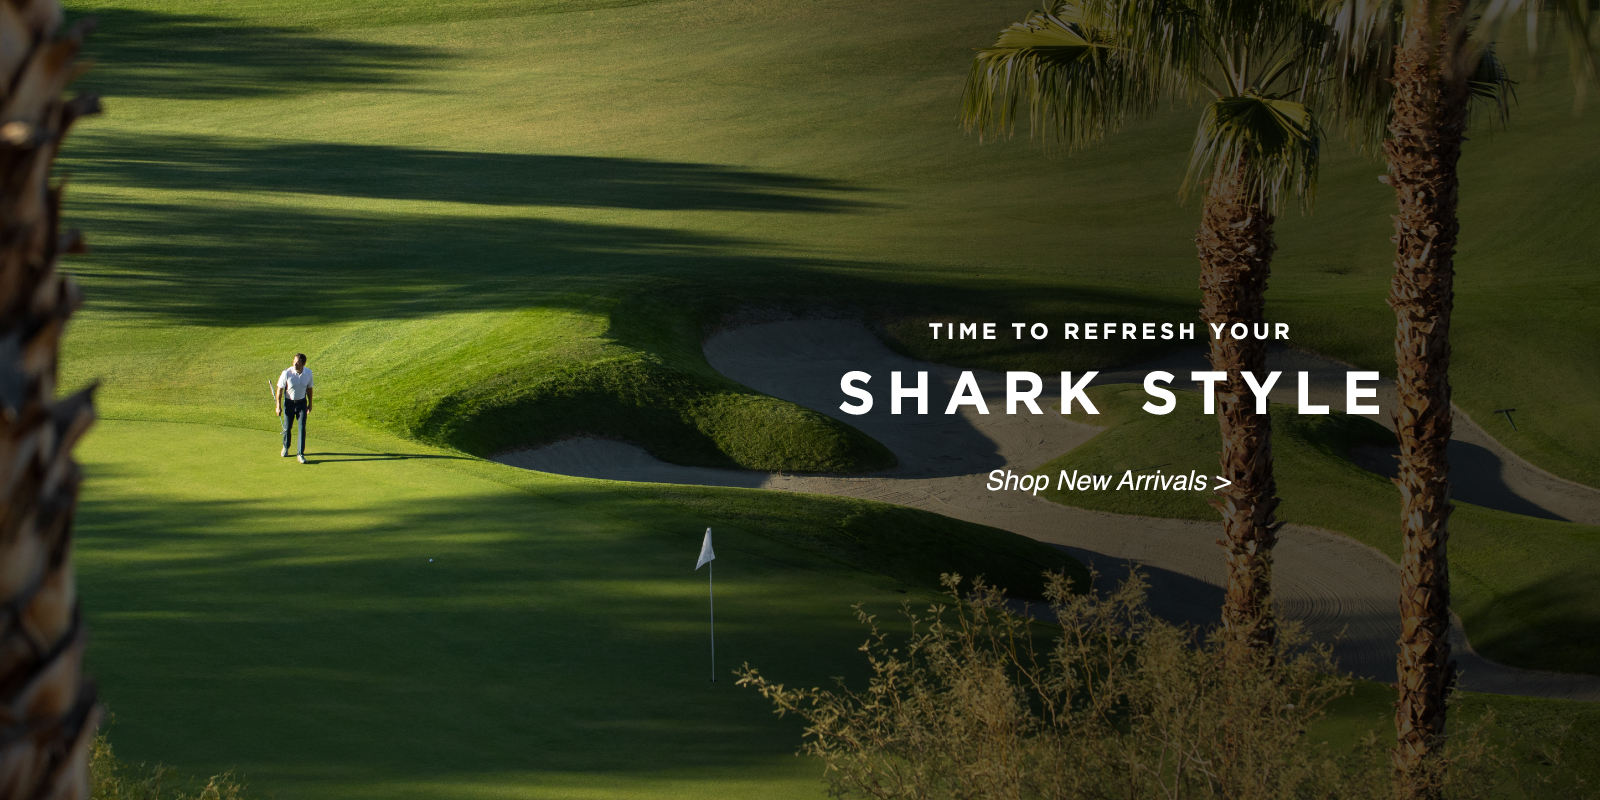 Time to refresh your shark style show new arrivals